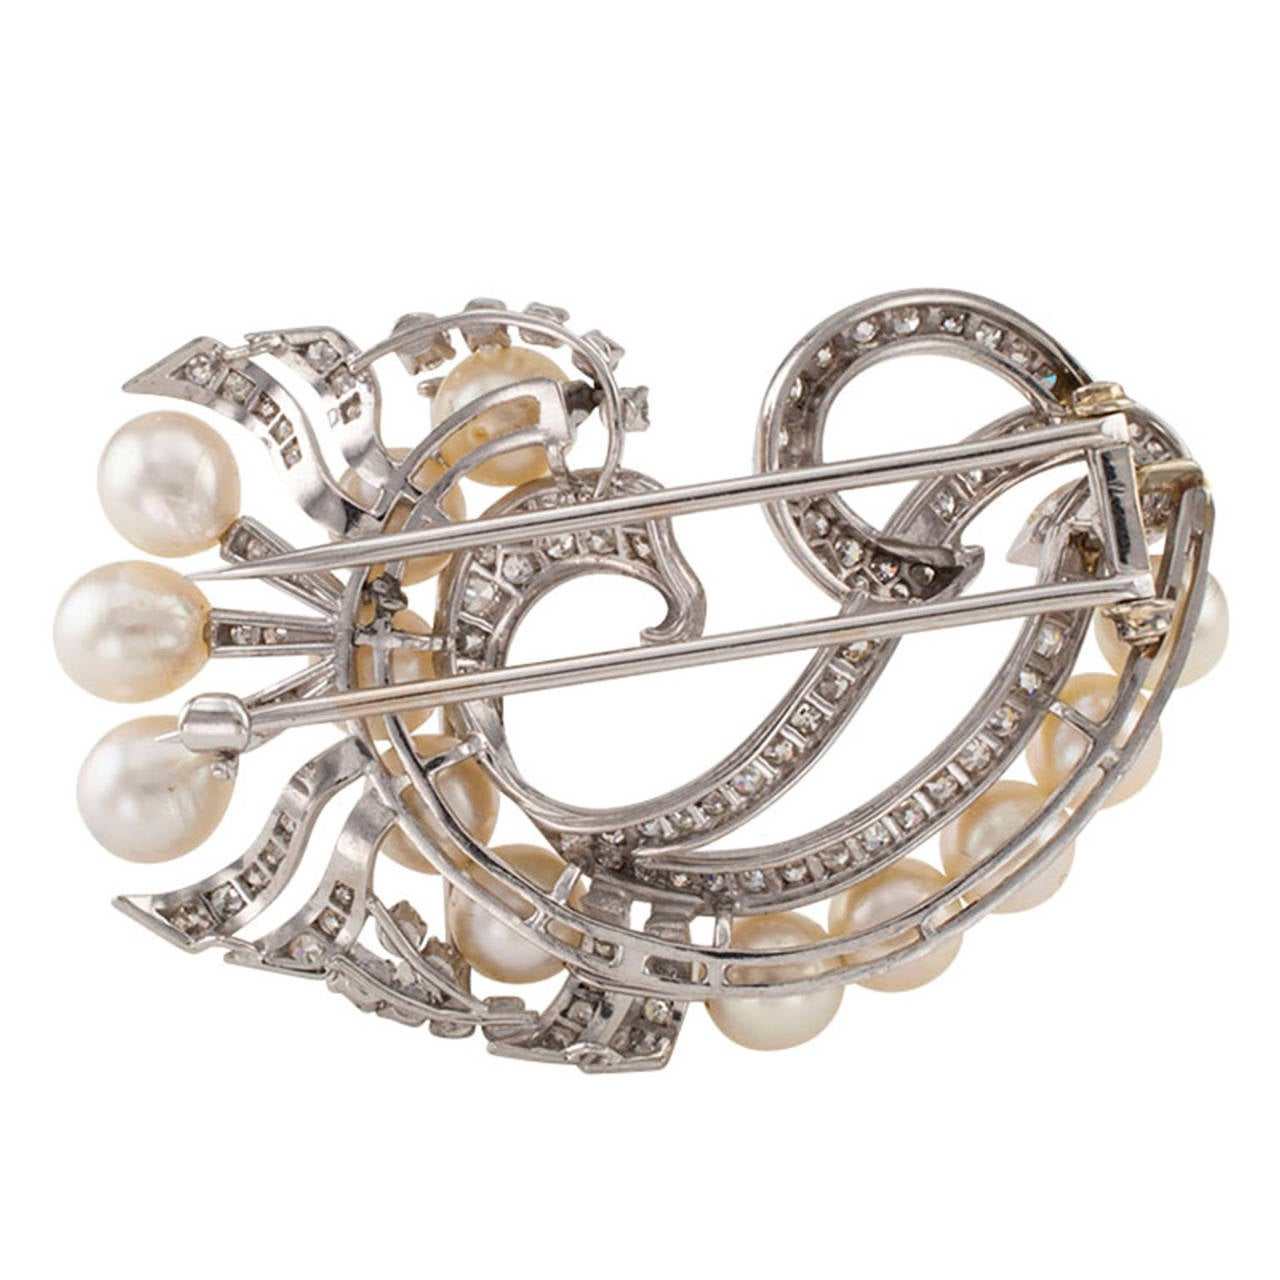 A Mid 20th Century Cultured Pearl And Diamond Clip Brooch Circa 1950  Mid 20th century pearl diamond and platinum clip brooch circa 1950.  The design punctuates the elegance and flair of the period when it was made without being dated.  A luxurious